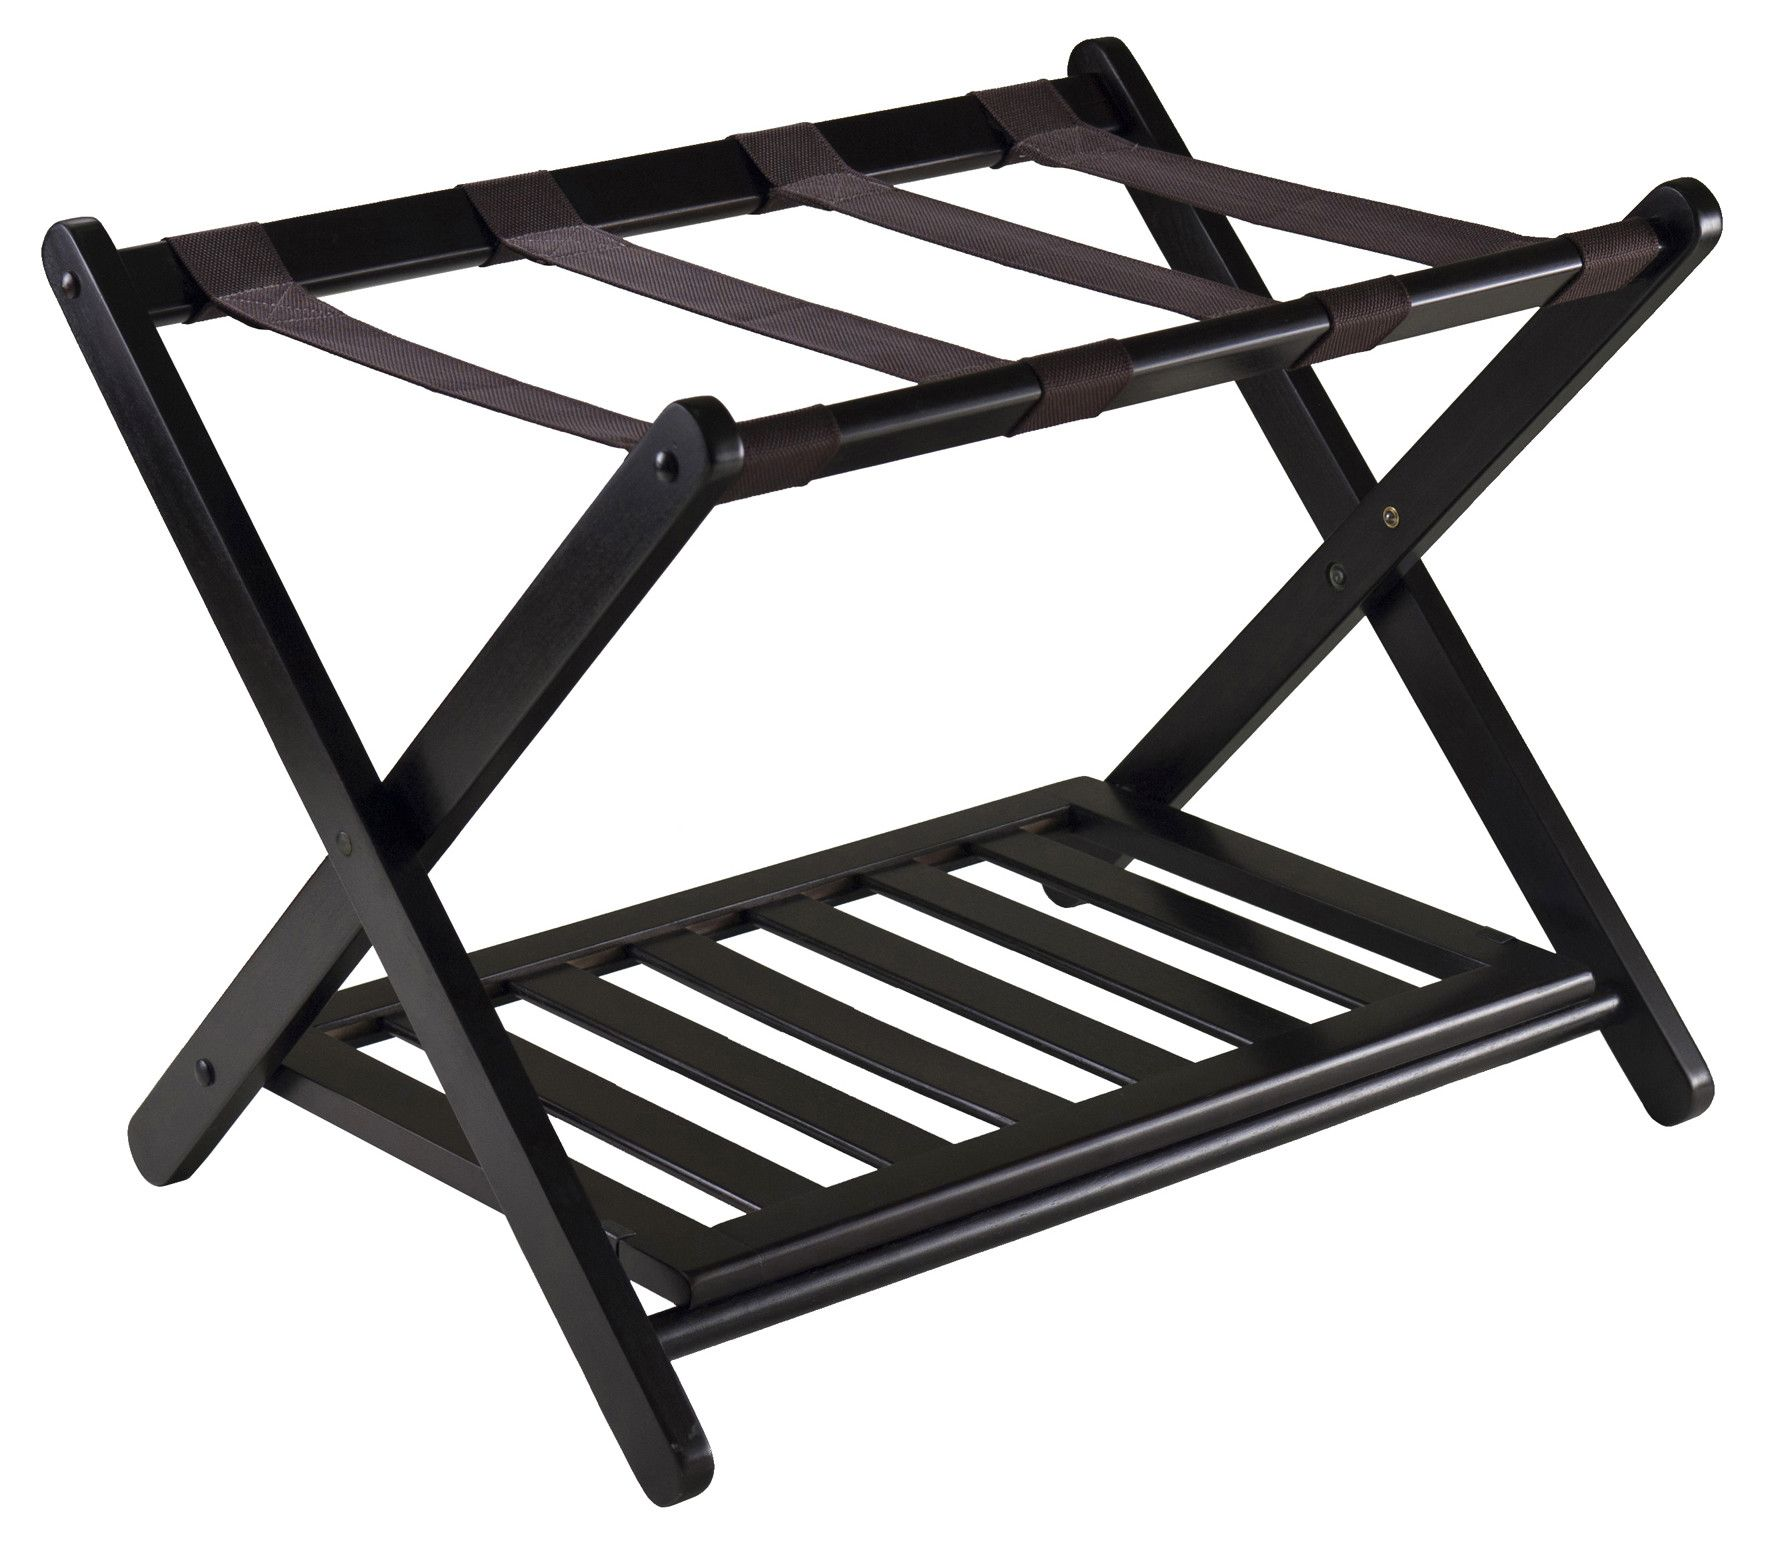 Luggage Racks For Guest Rooms Reese Straight Leg Luggage Rack  Luggage Rack Bedrooms And Room